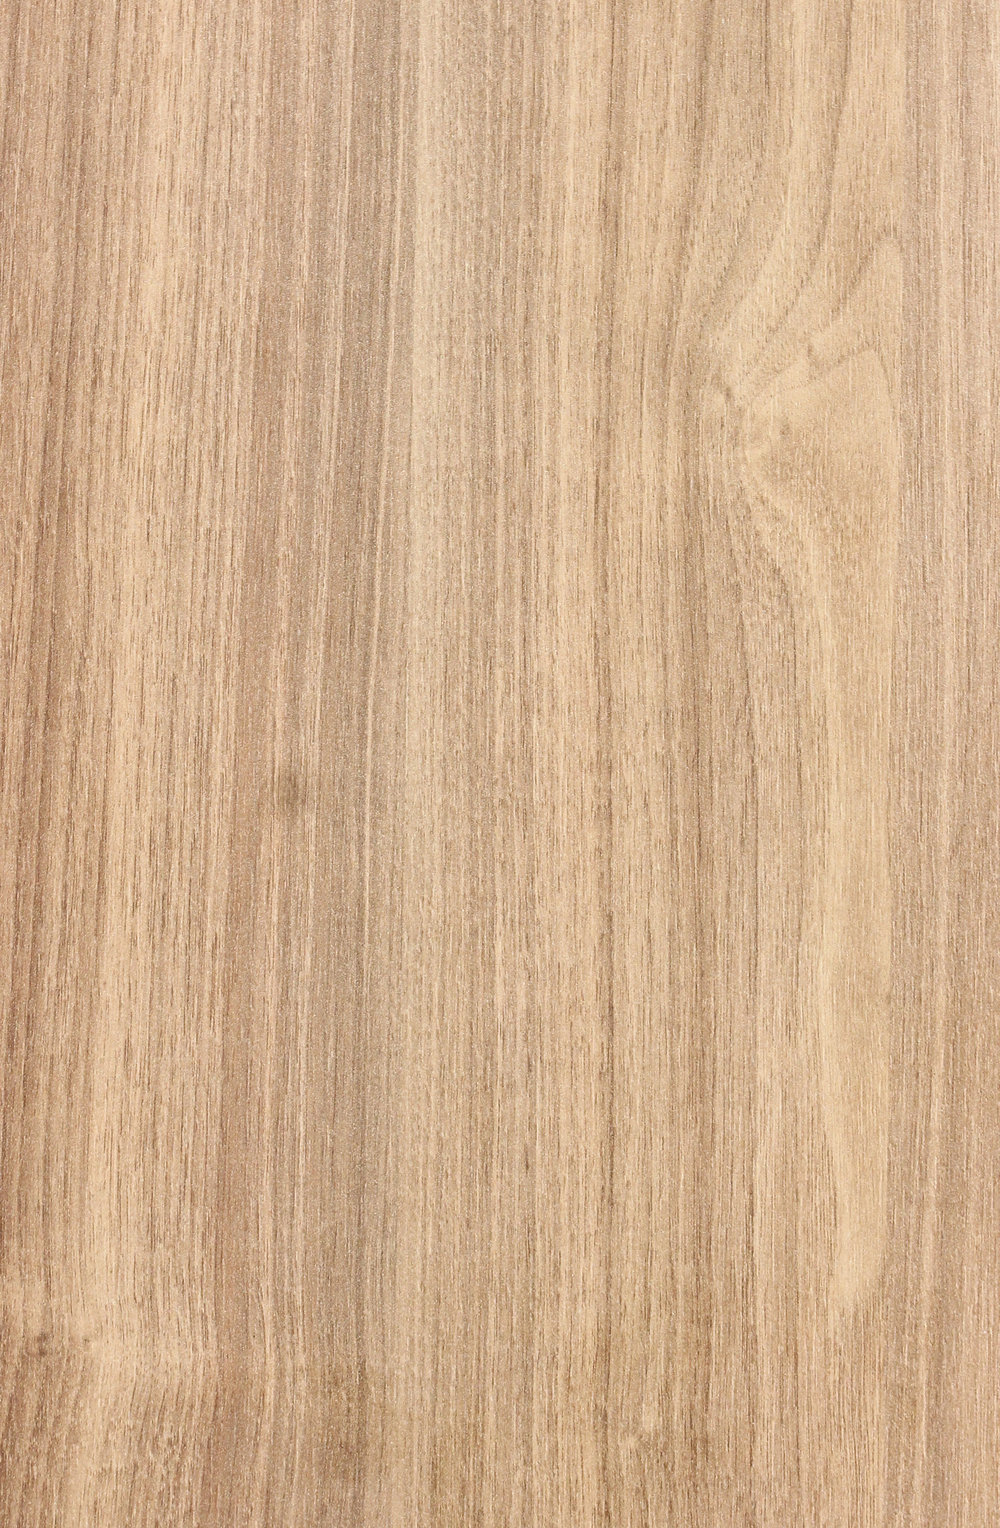 K008PW -  LIGHT SELECT WALNUT